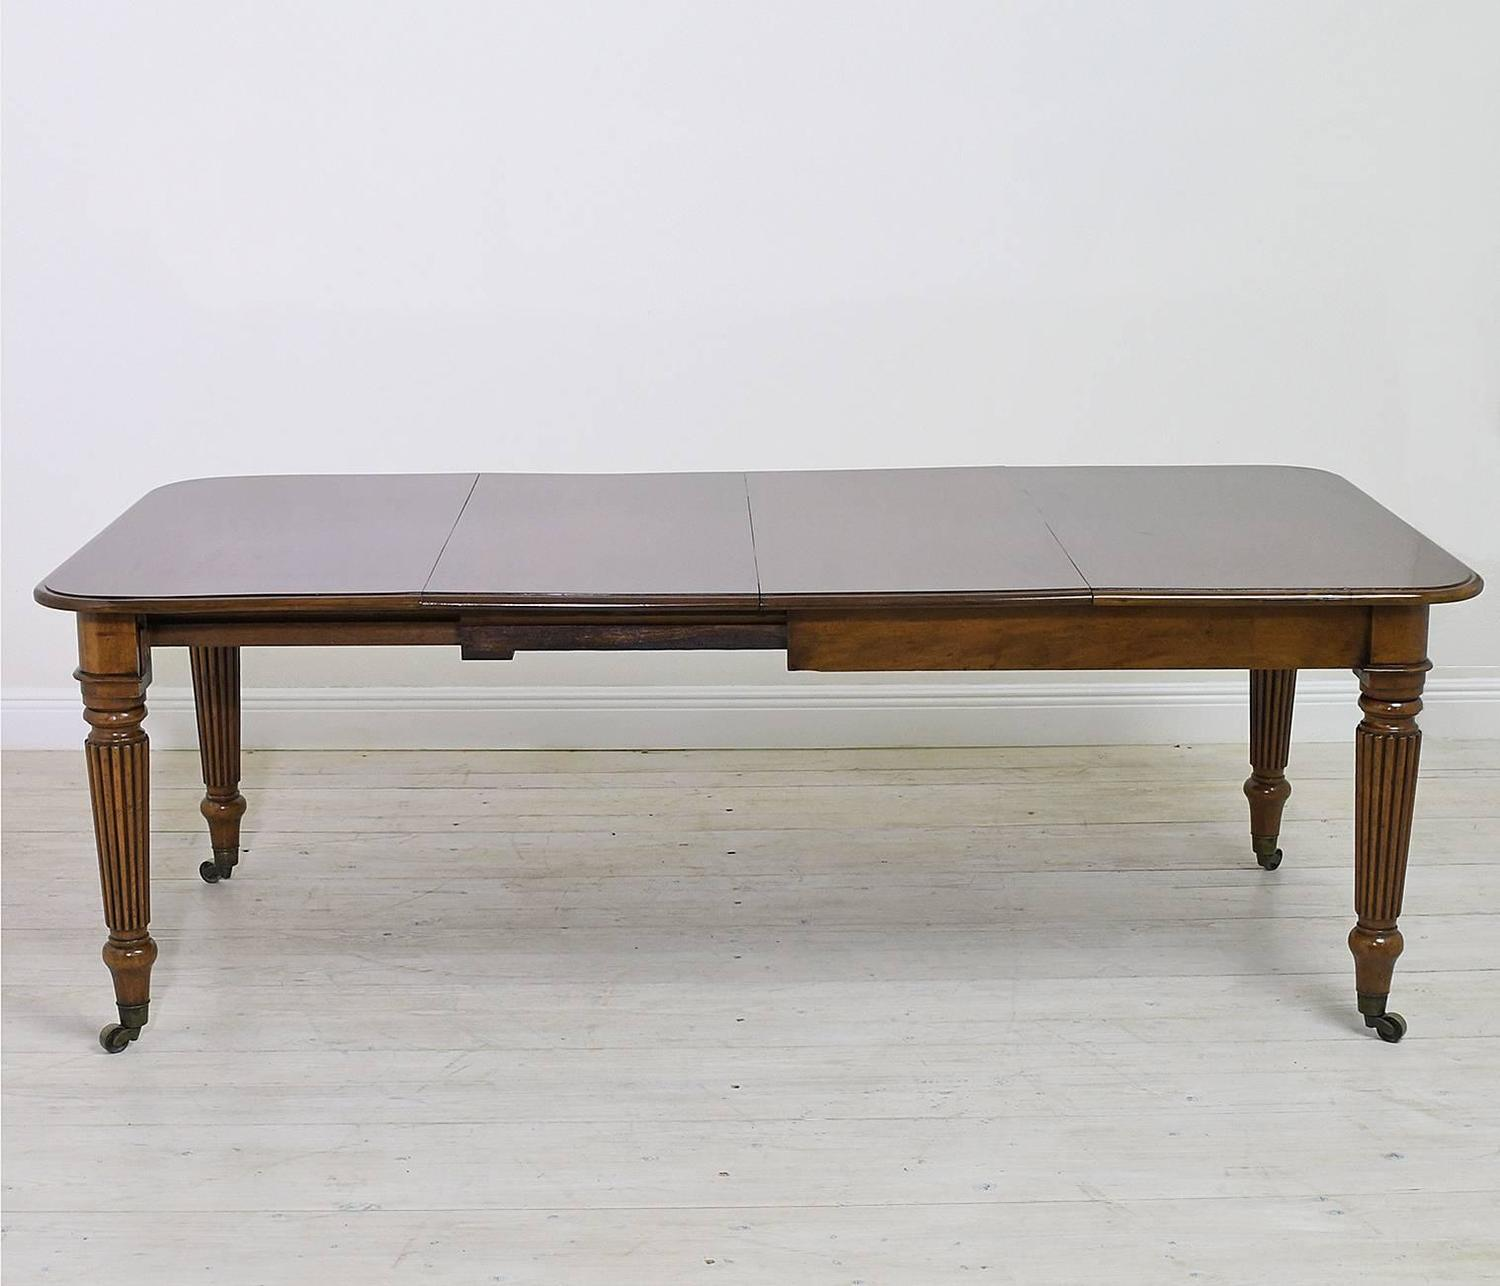 19th Century English Victorian Extension Dining Table in  : DSC2953z from www.1stdibs.com size 1500 x 1286 jpeg 110kB